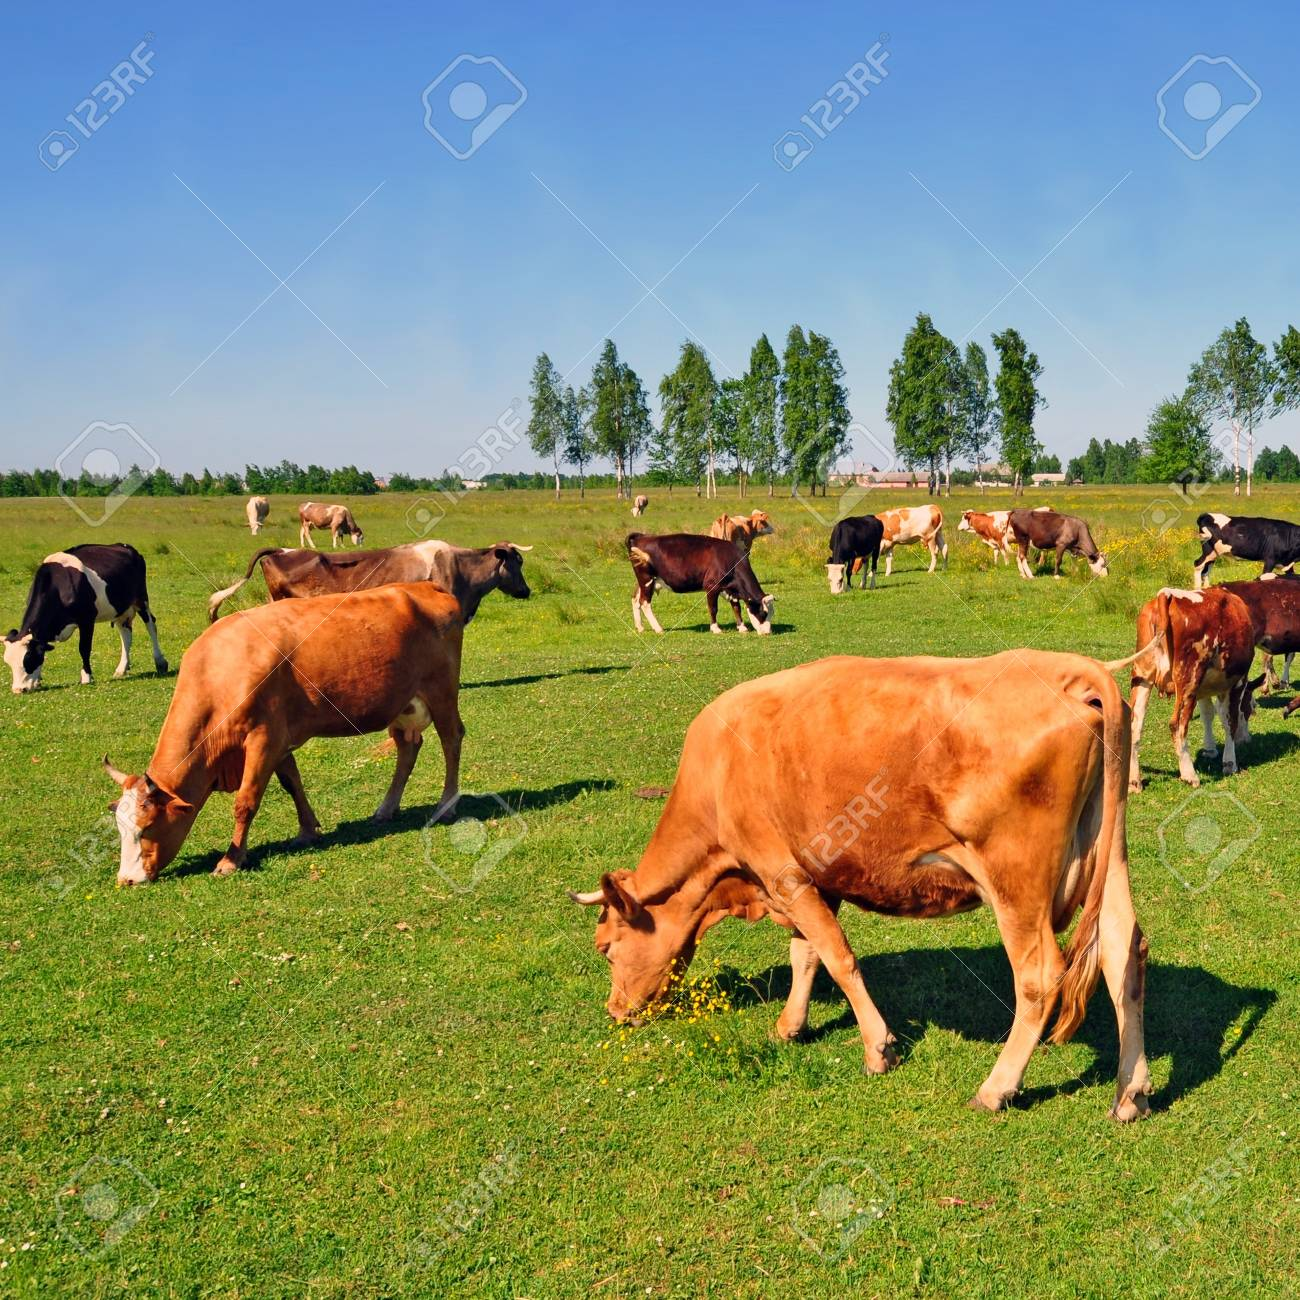 Cows on a summer pasture Stock Photo - 18437953